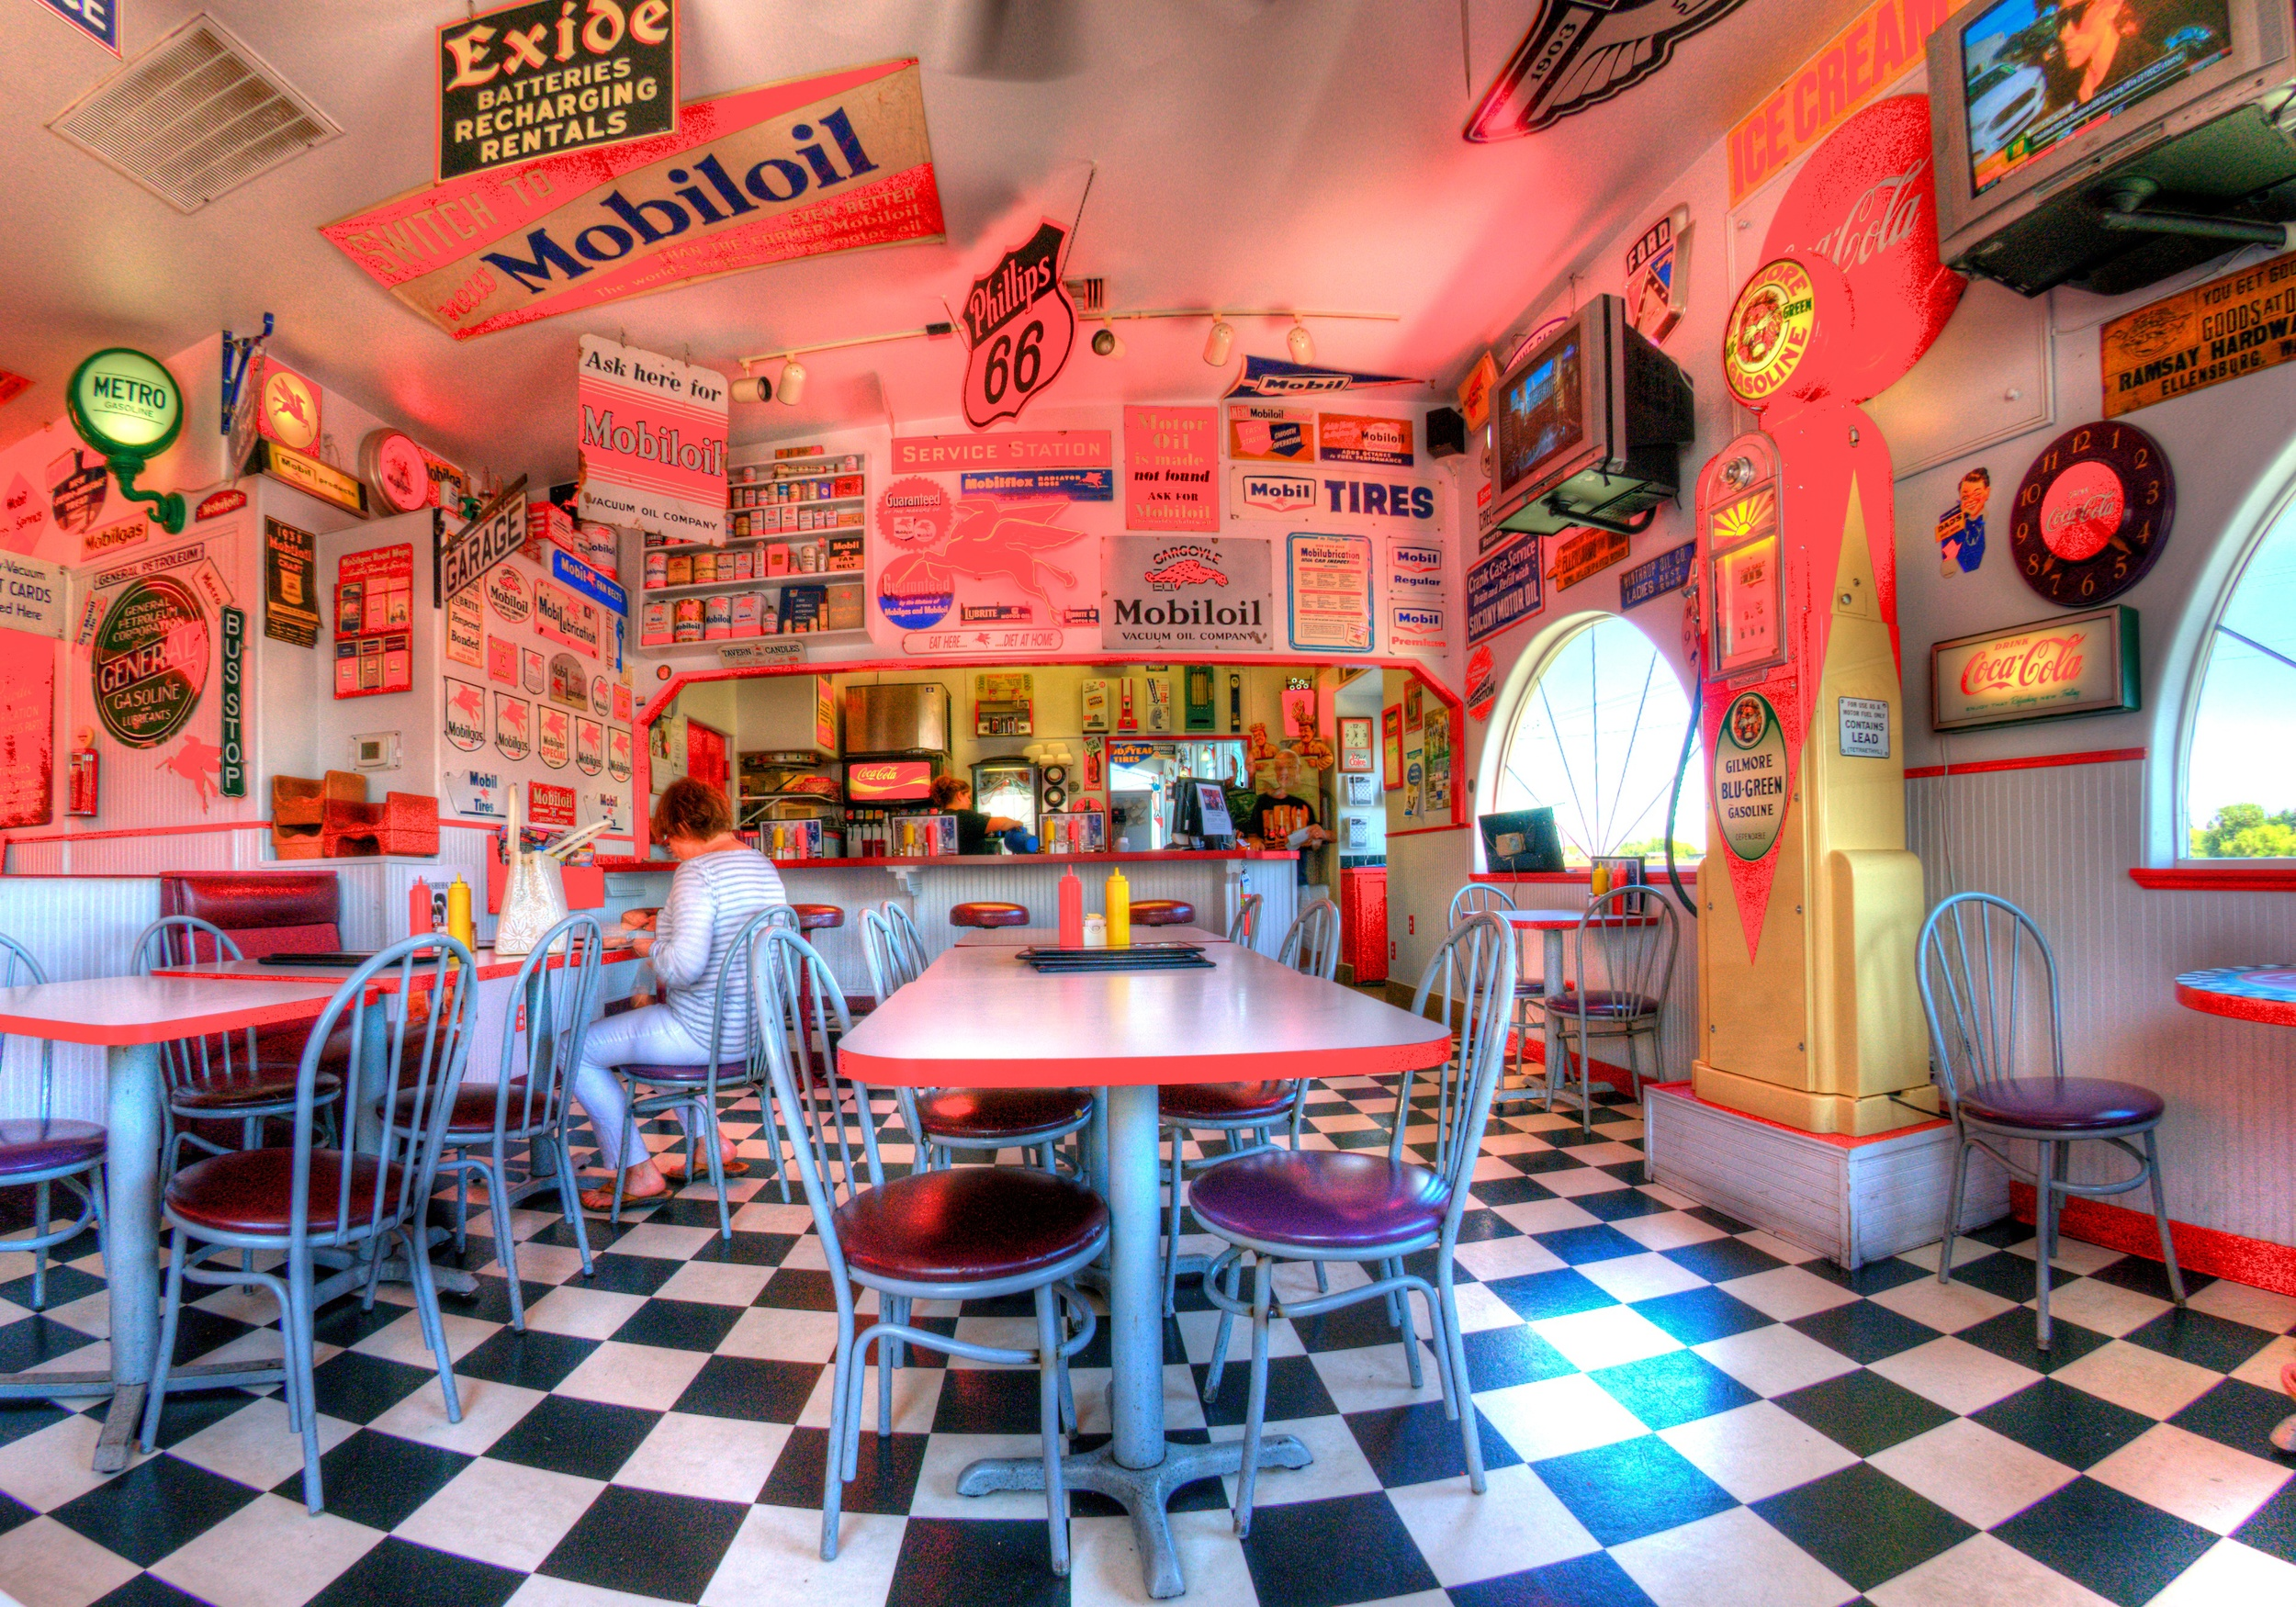 Red Horse Diner, photo by Paul B. Peters